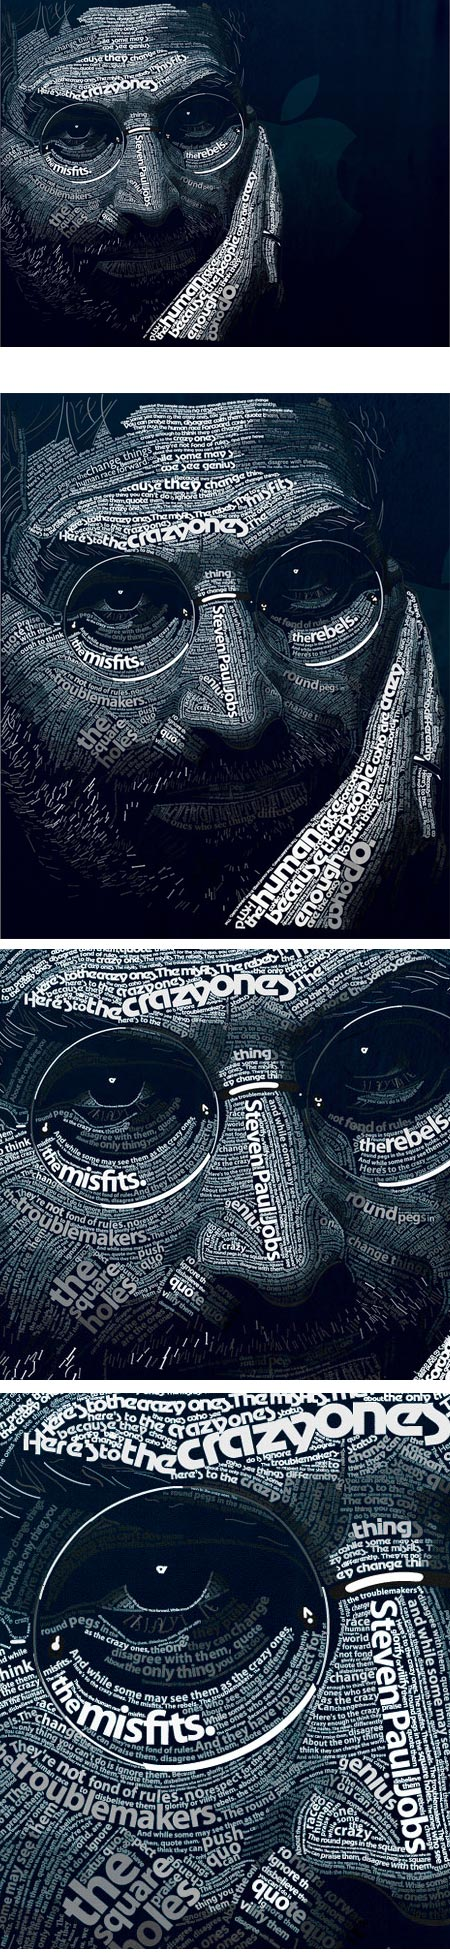 Steve Jobs typographical portrait by Dylan Roscover